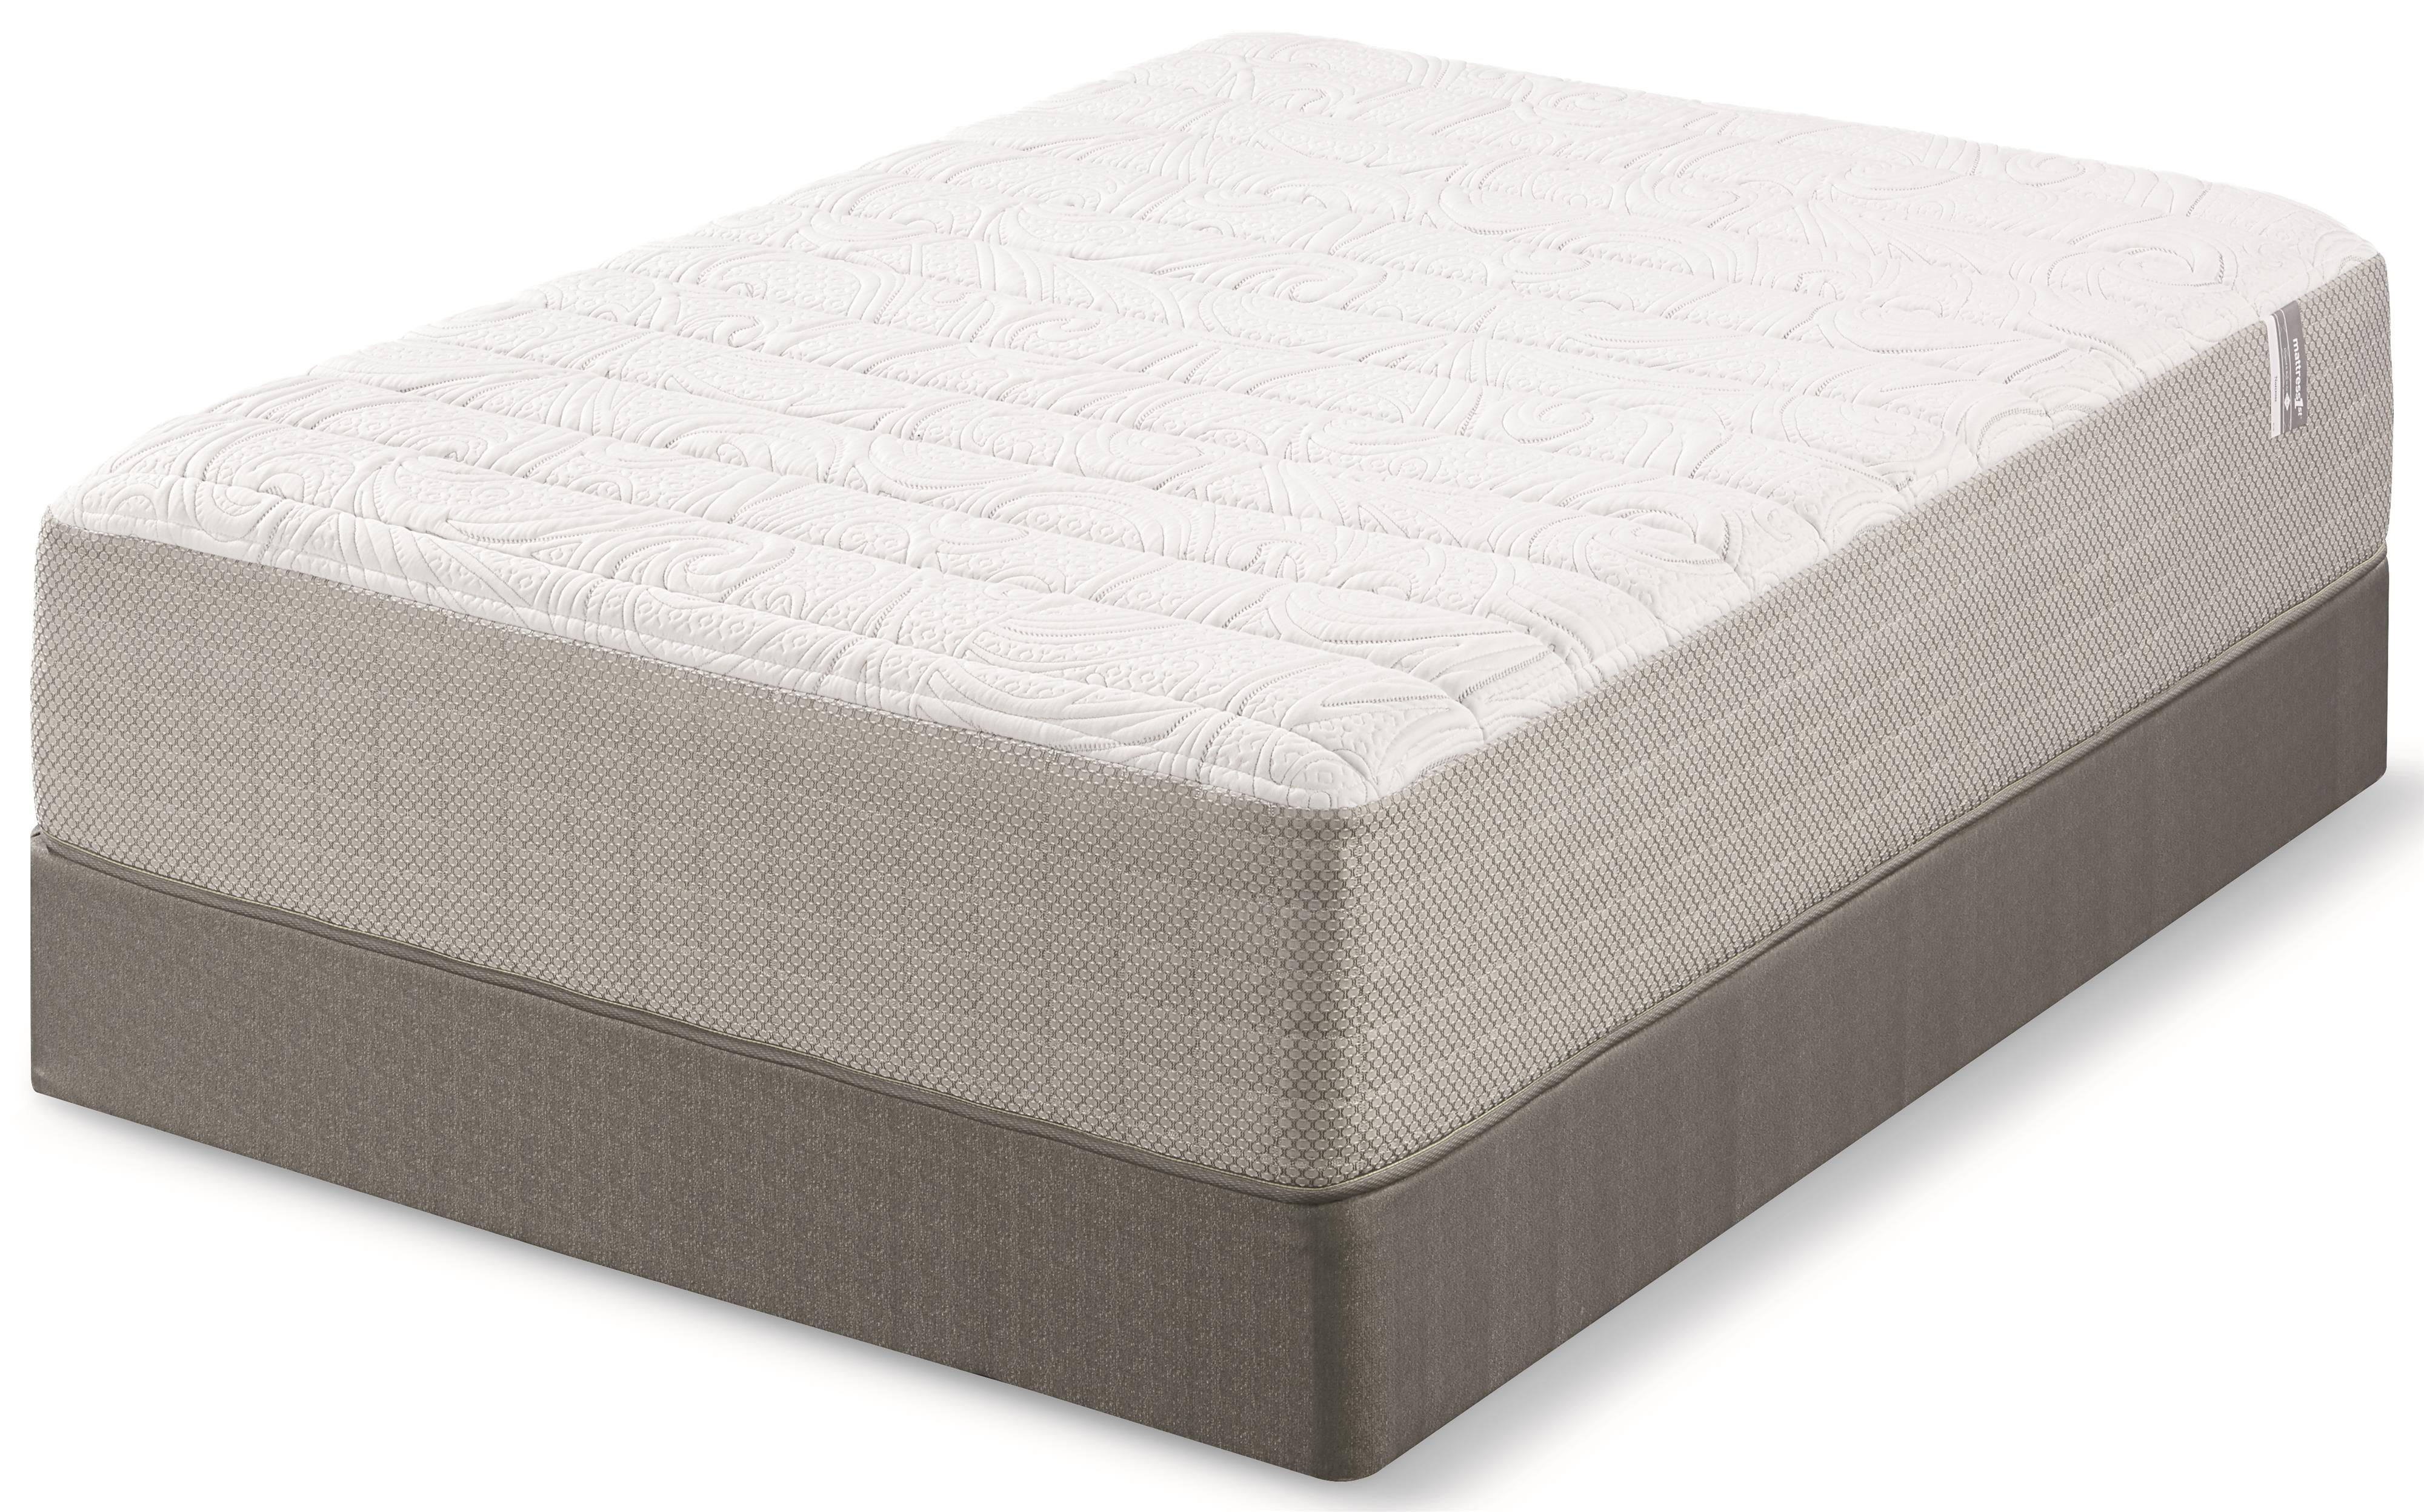 Mattress 1st Norcross Twin XL Plush Memory Foam Mattress - Item Number: 500951132-TXL